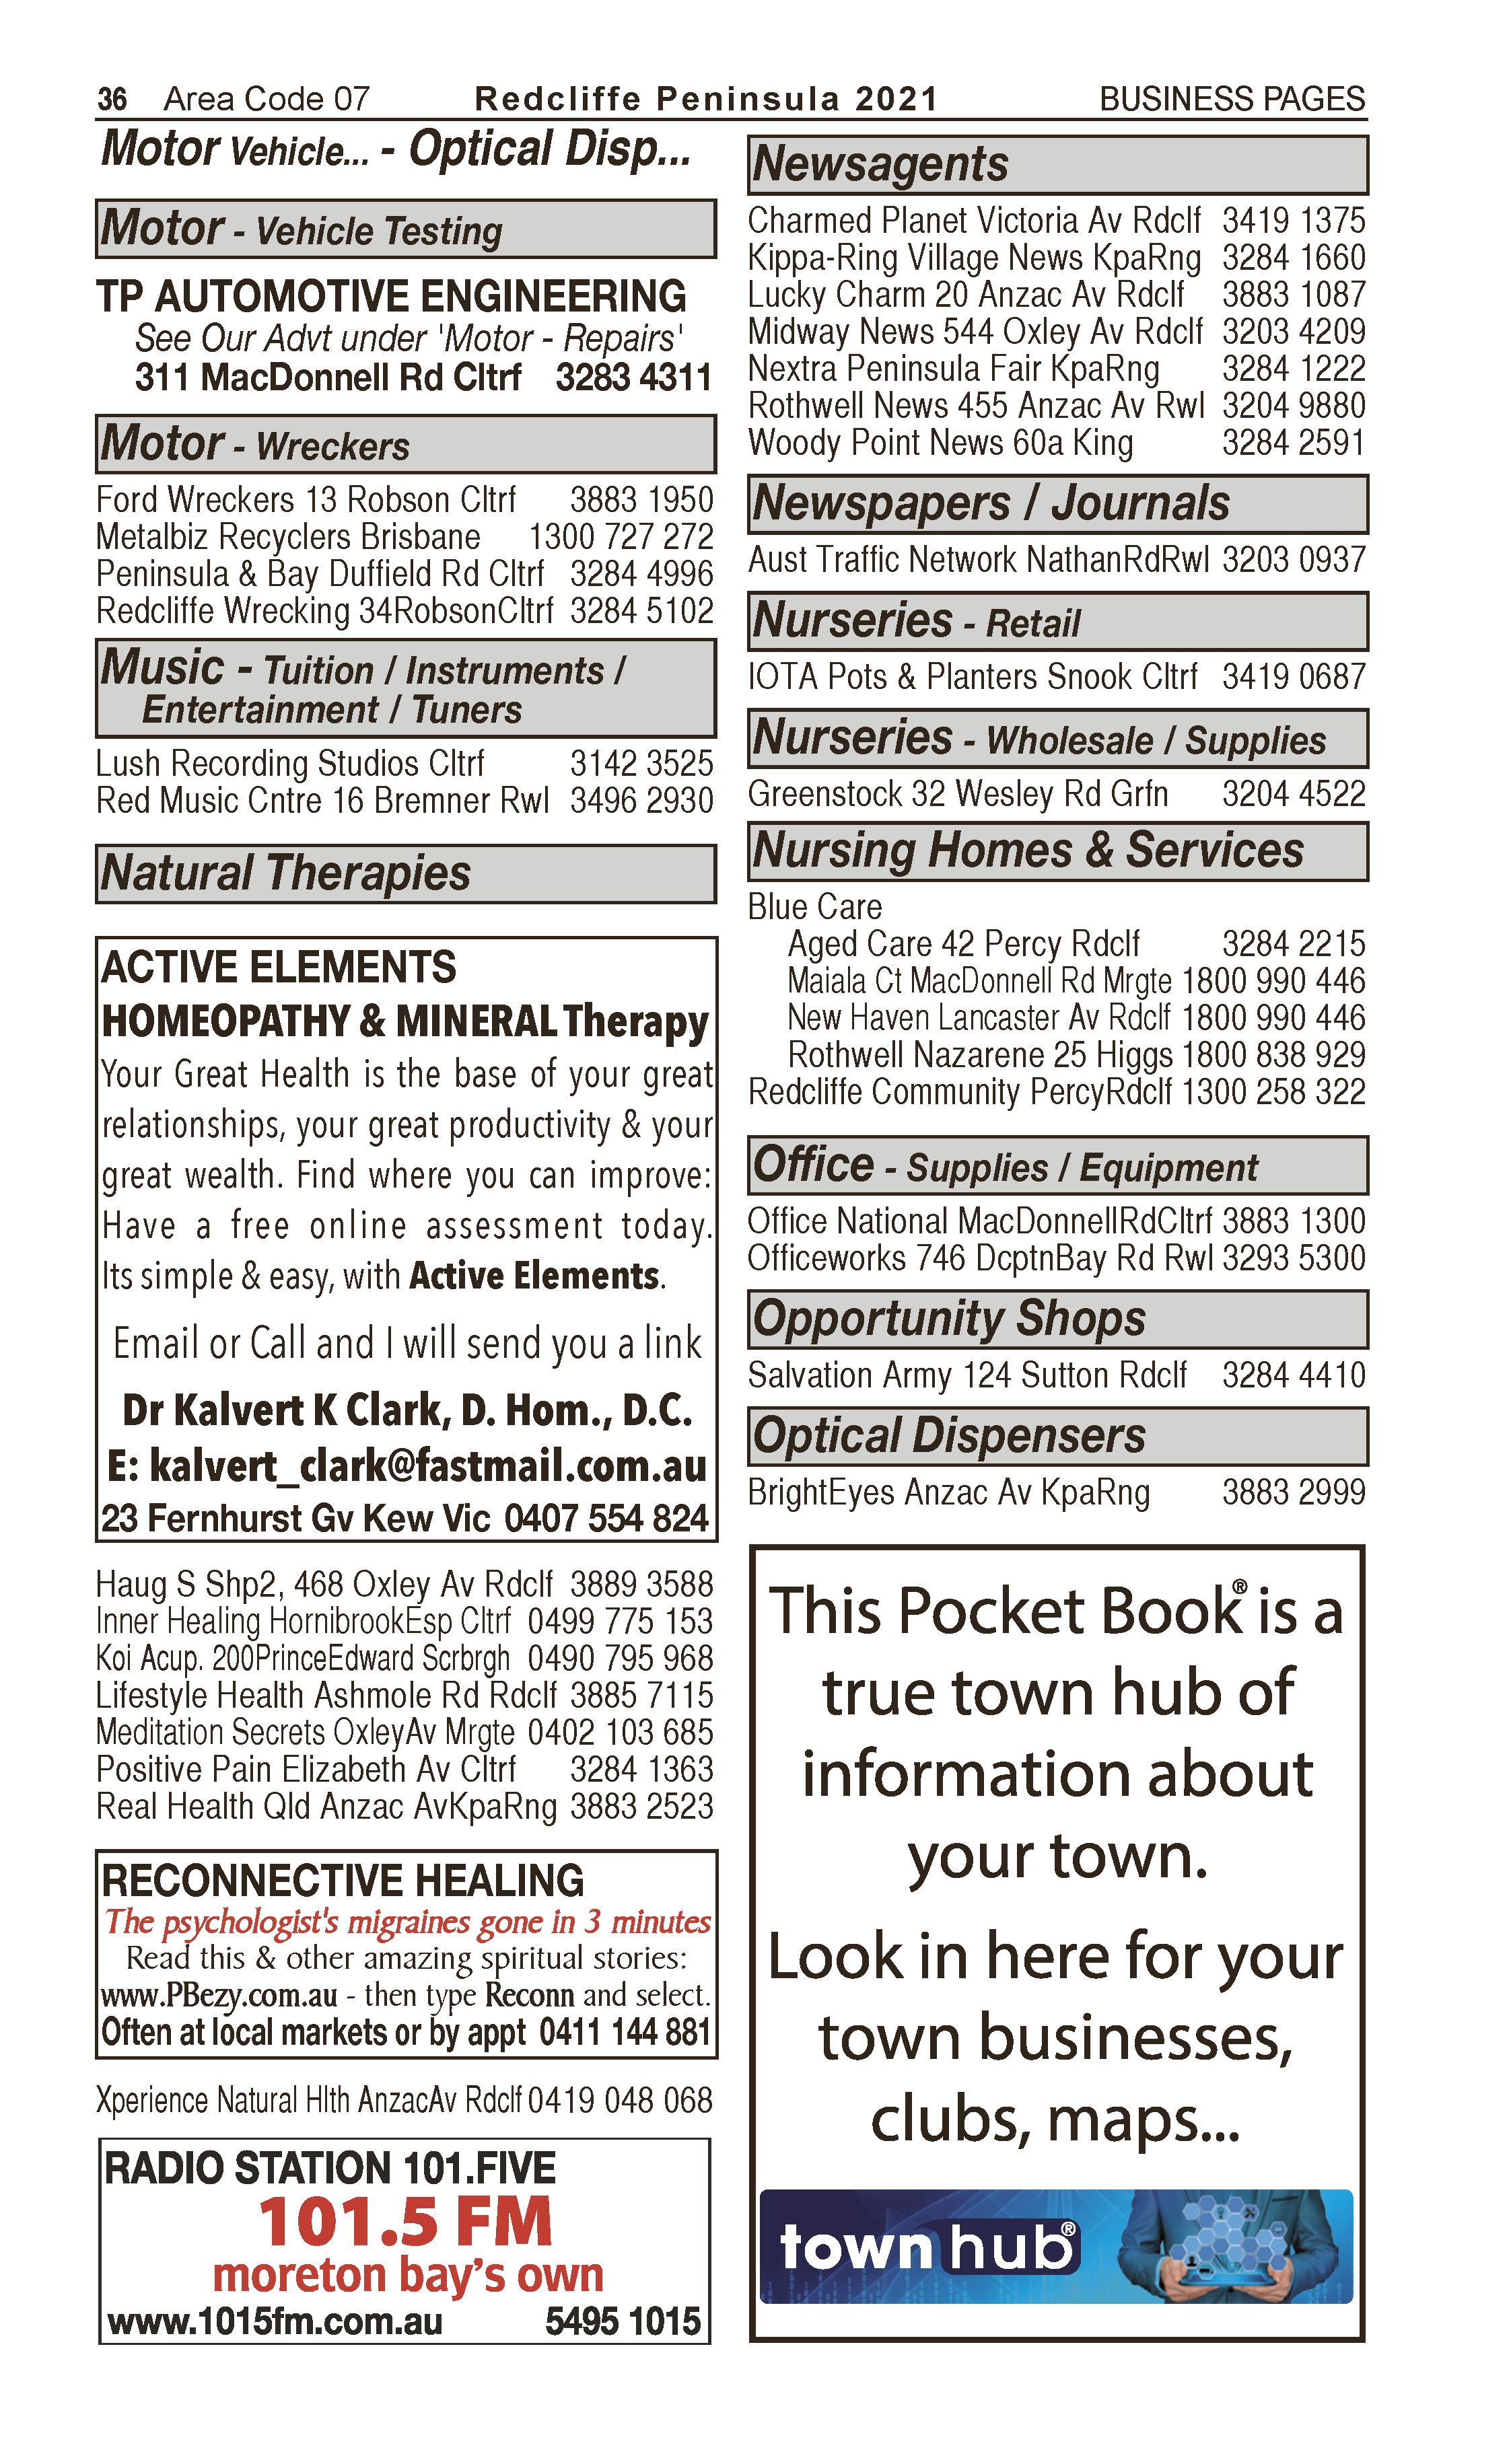 Active Elements | Natural Therapies in Kew | PBezy Pocket Books local directories - page 36